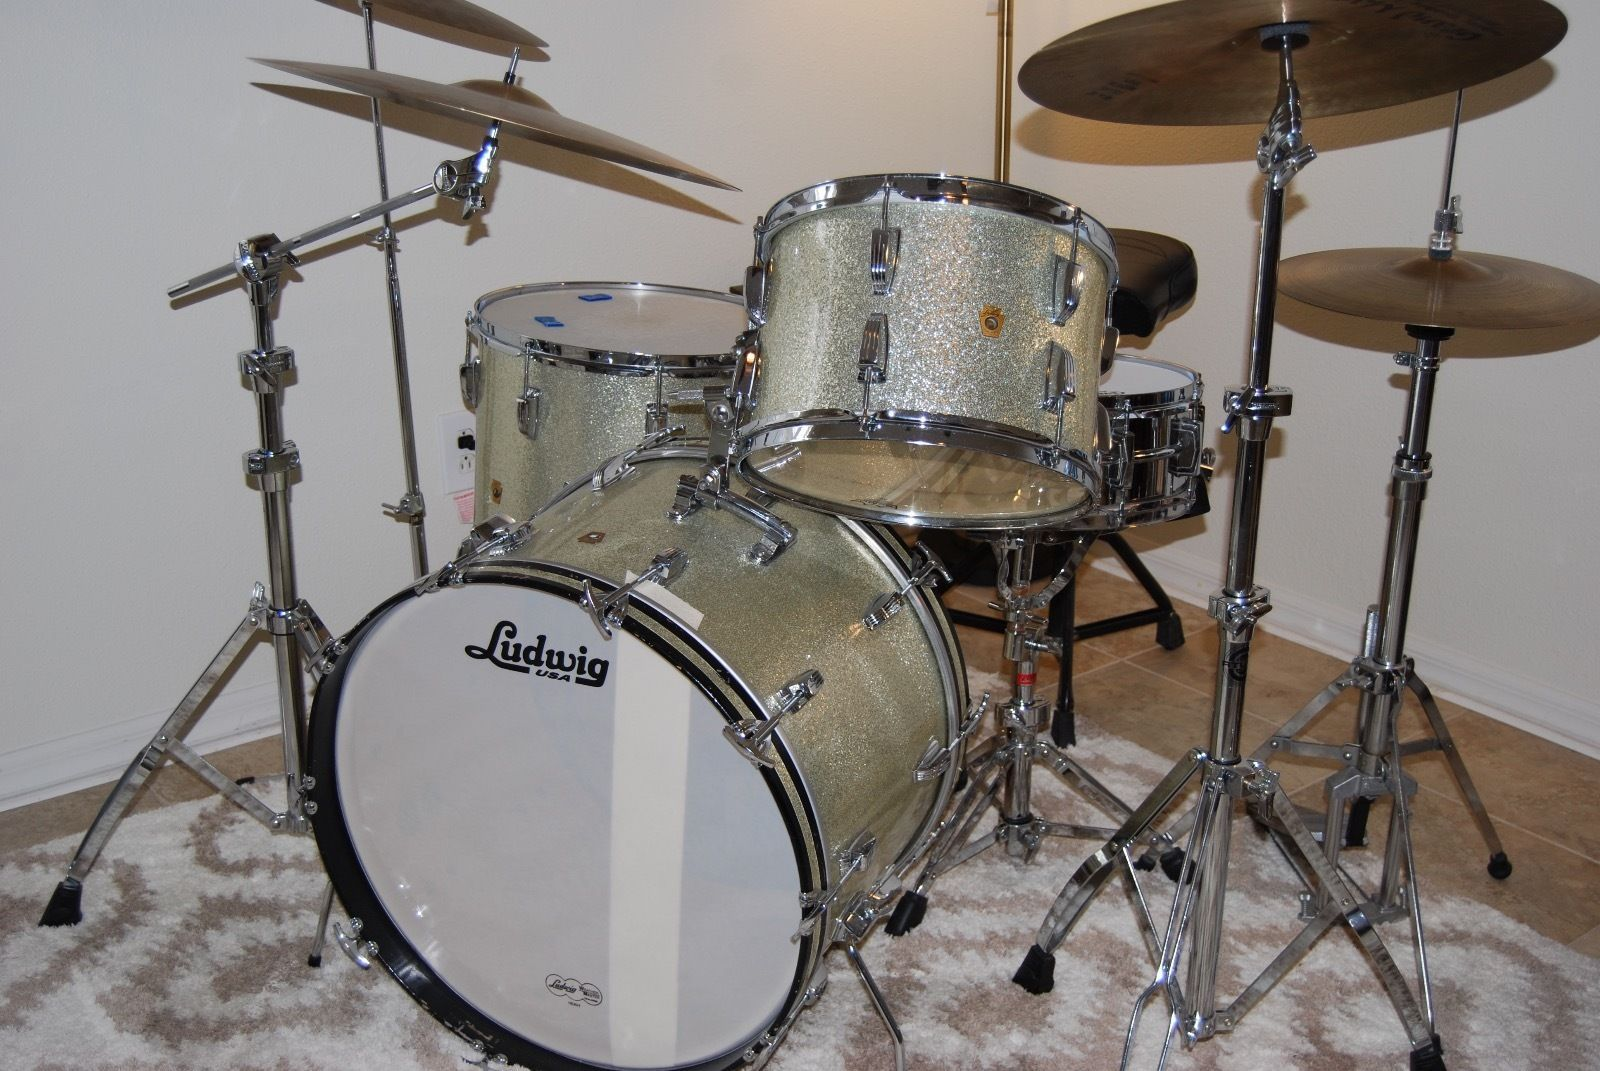 Ludwig Silver Sparkle 60s Vintage Drum Set 1 Owner For 53 Years